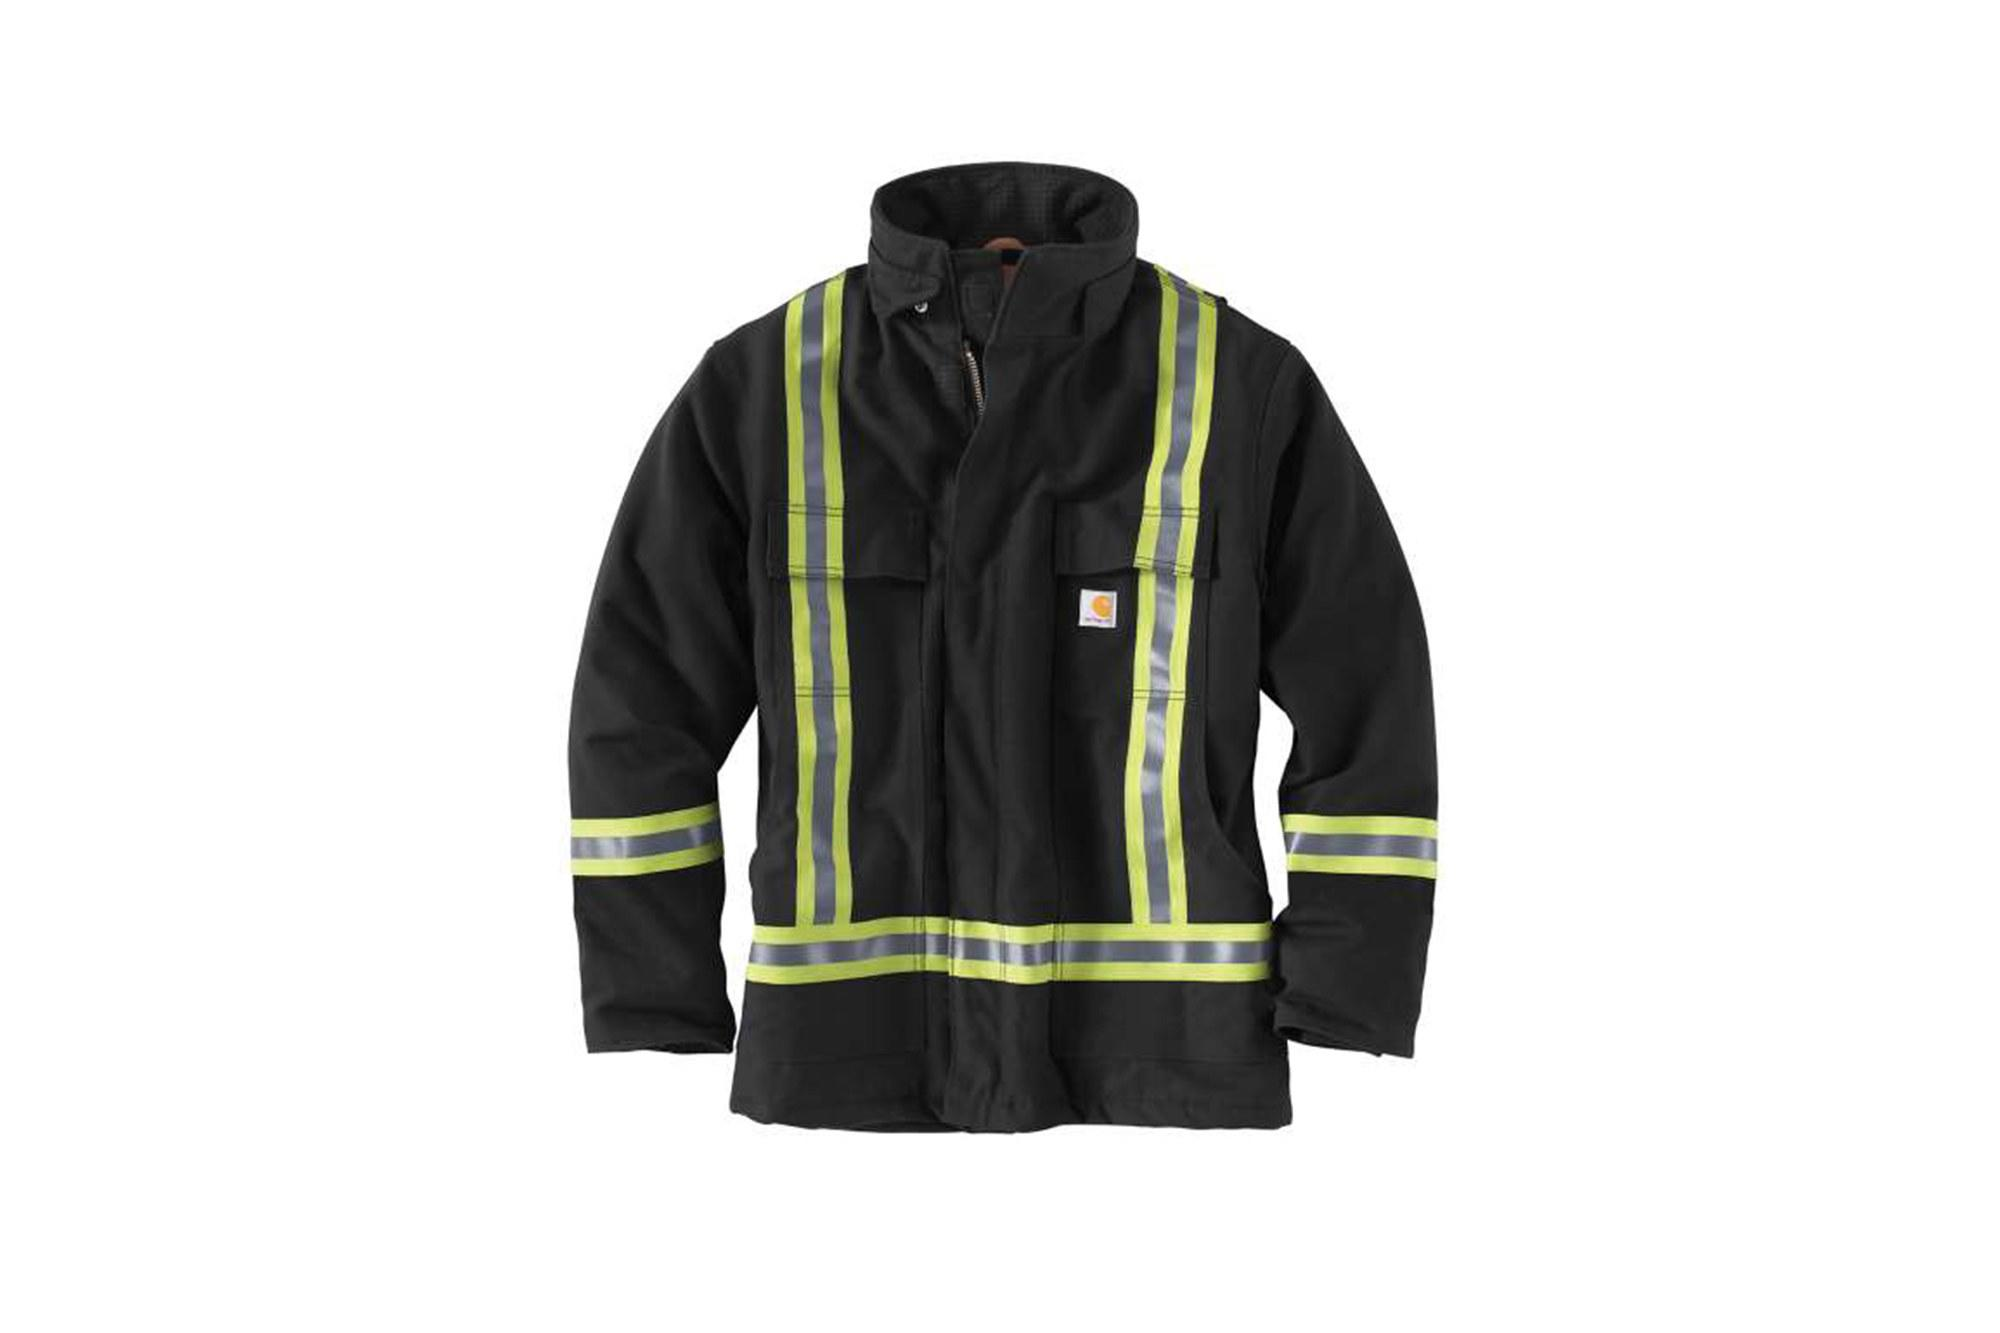 Fireman Clothes Are Real Clothes Now According To Fashion Designers